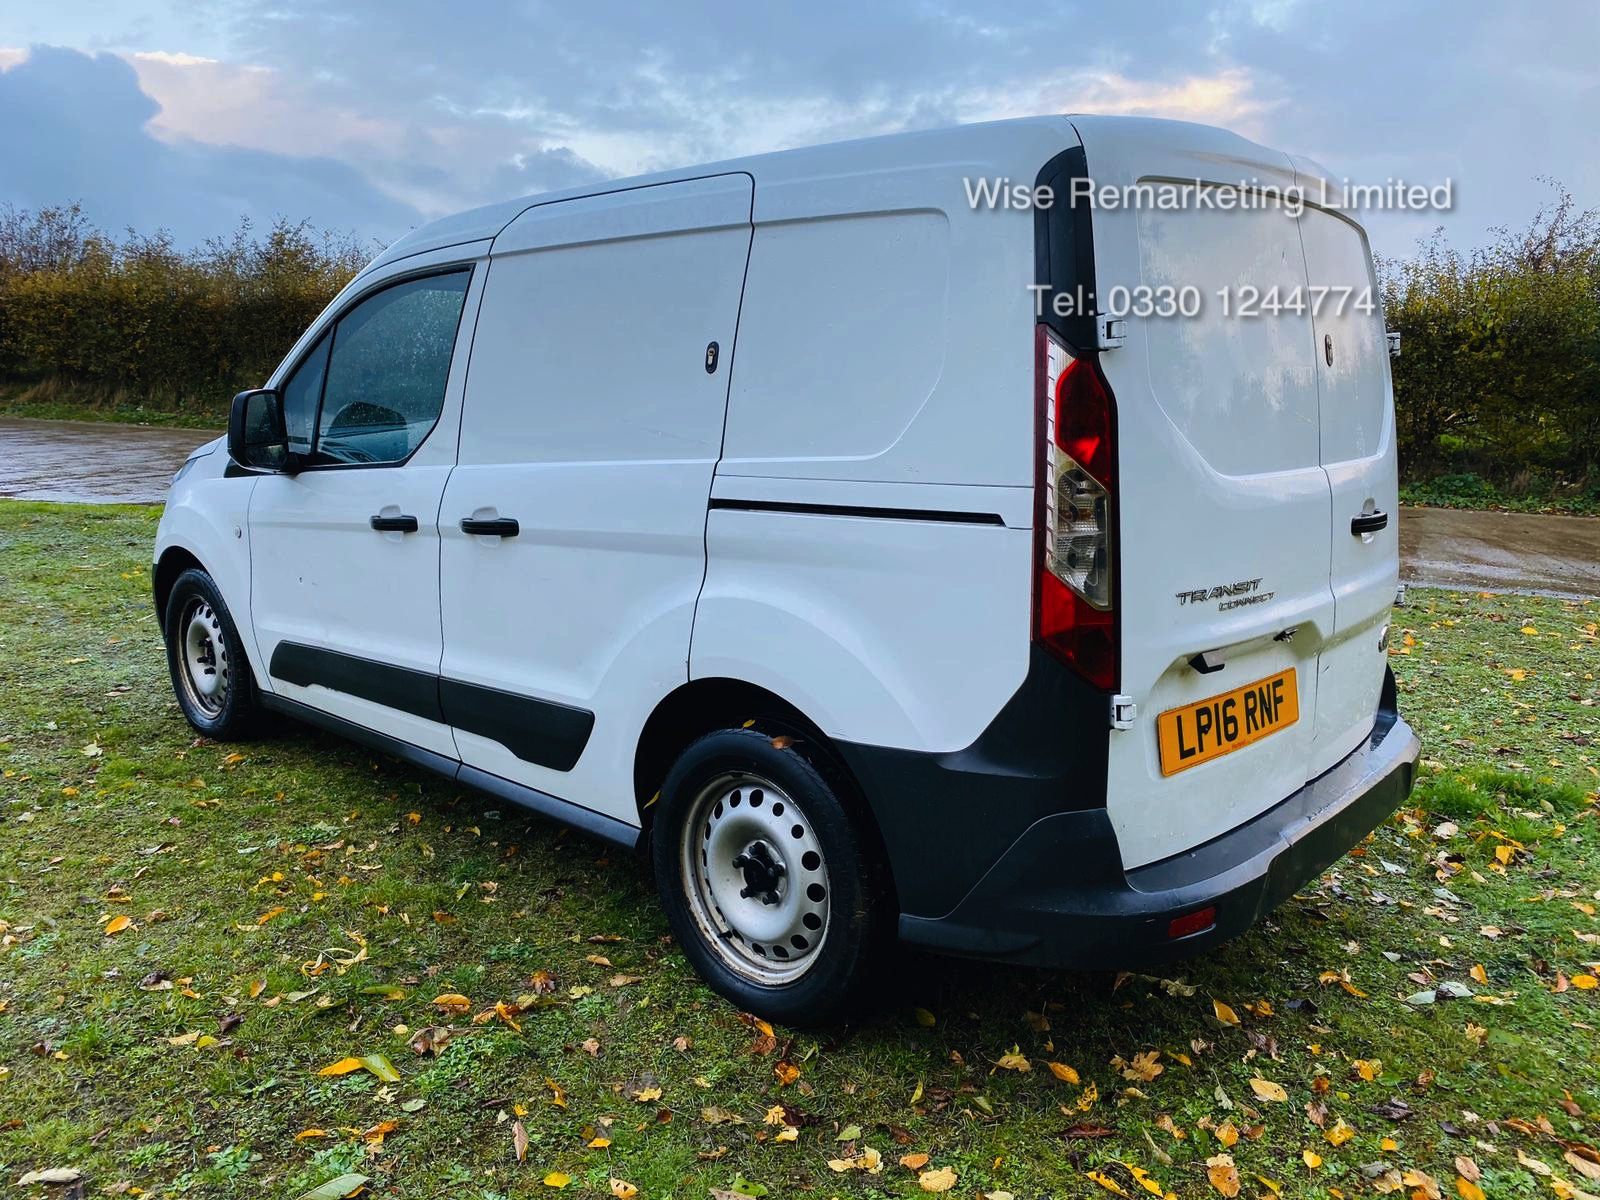 Ford Transit Connect 200 1.6 TDCI - 2016 16 Reg - 1 Keeper From New - Elec Pack -Bluetooth - Image 8 of 18